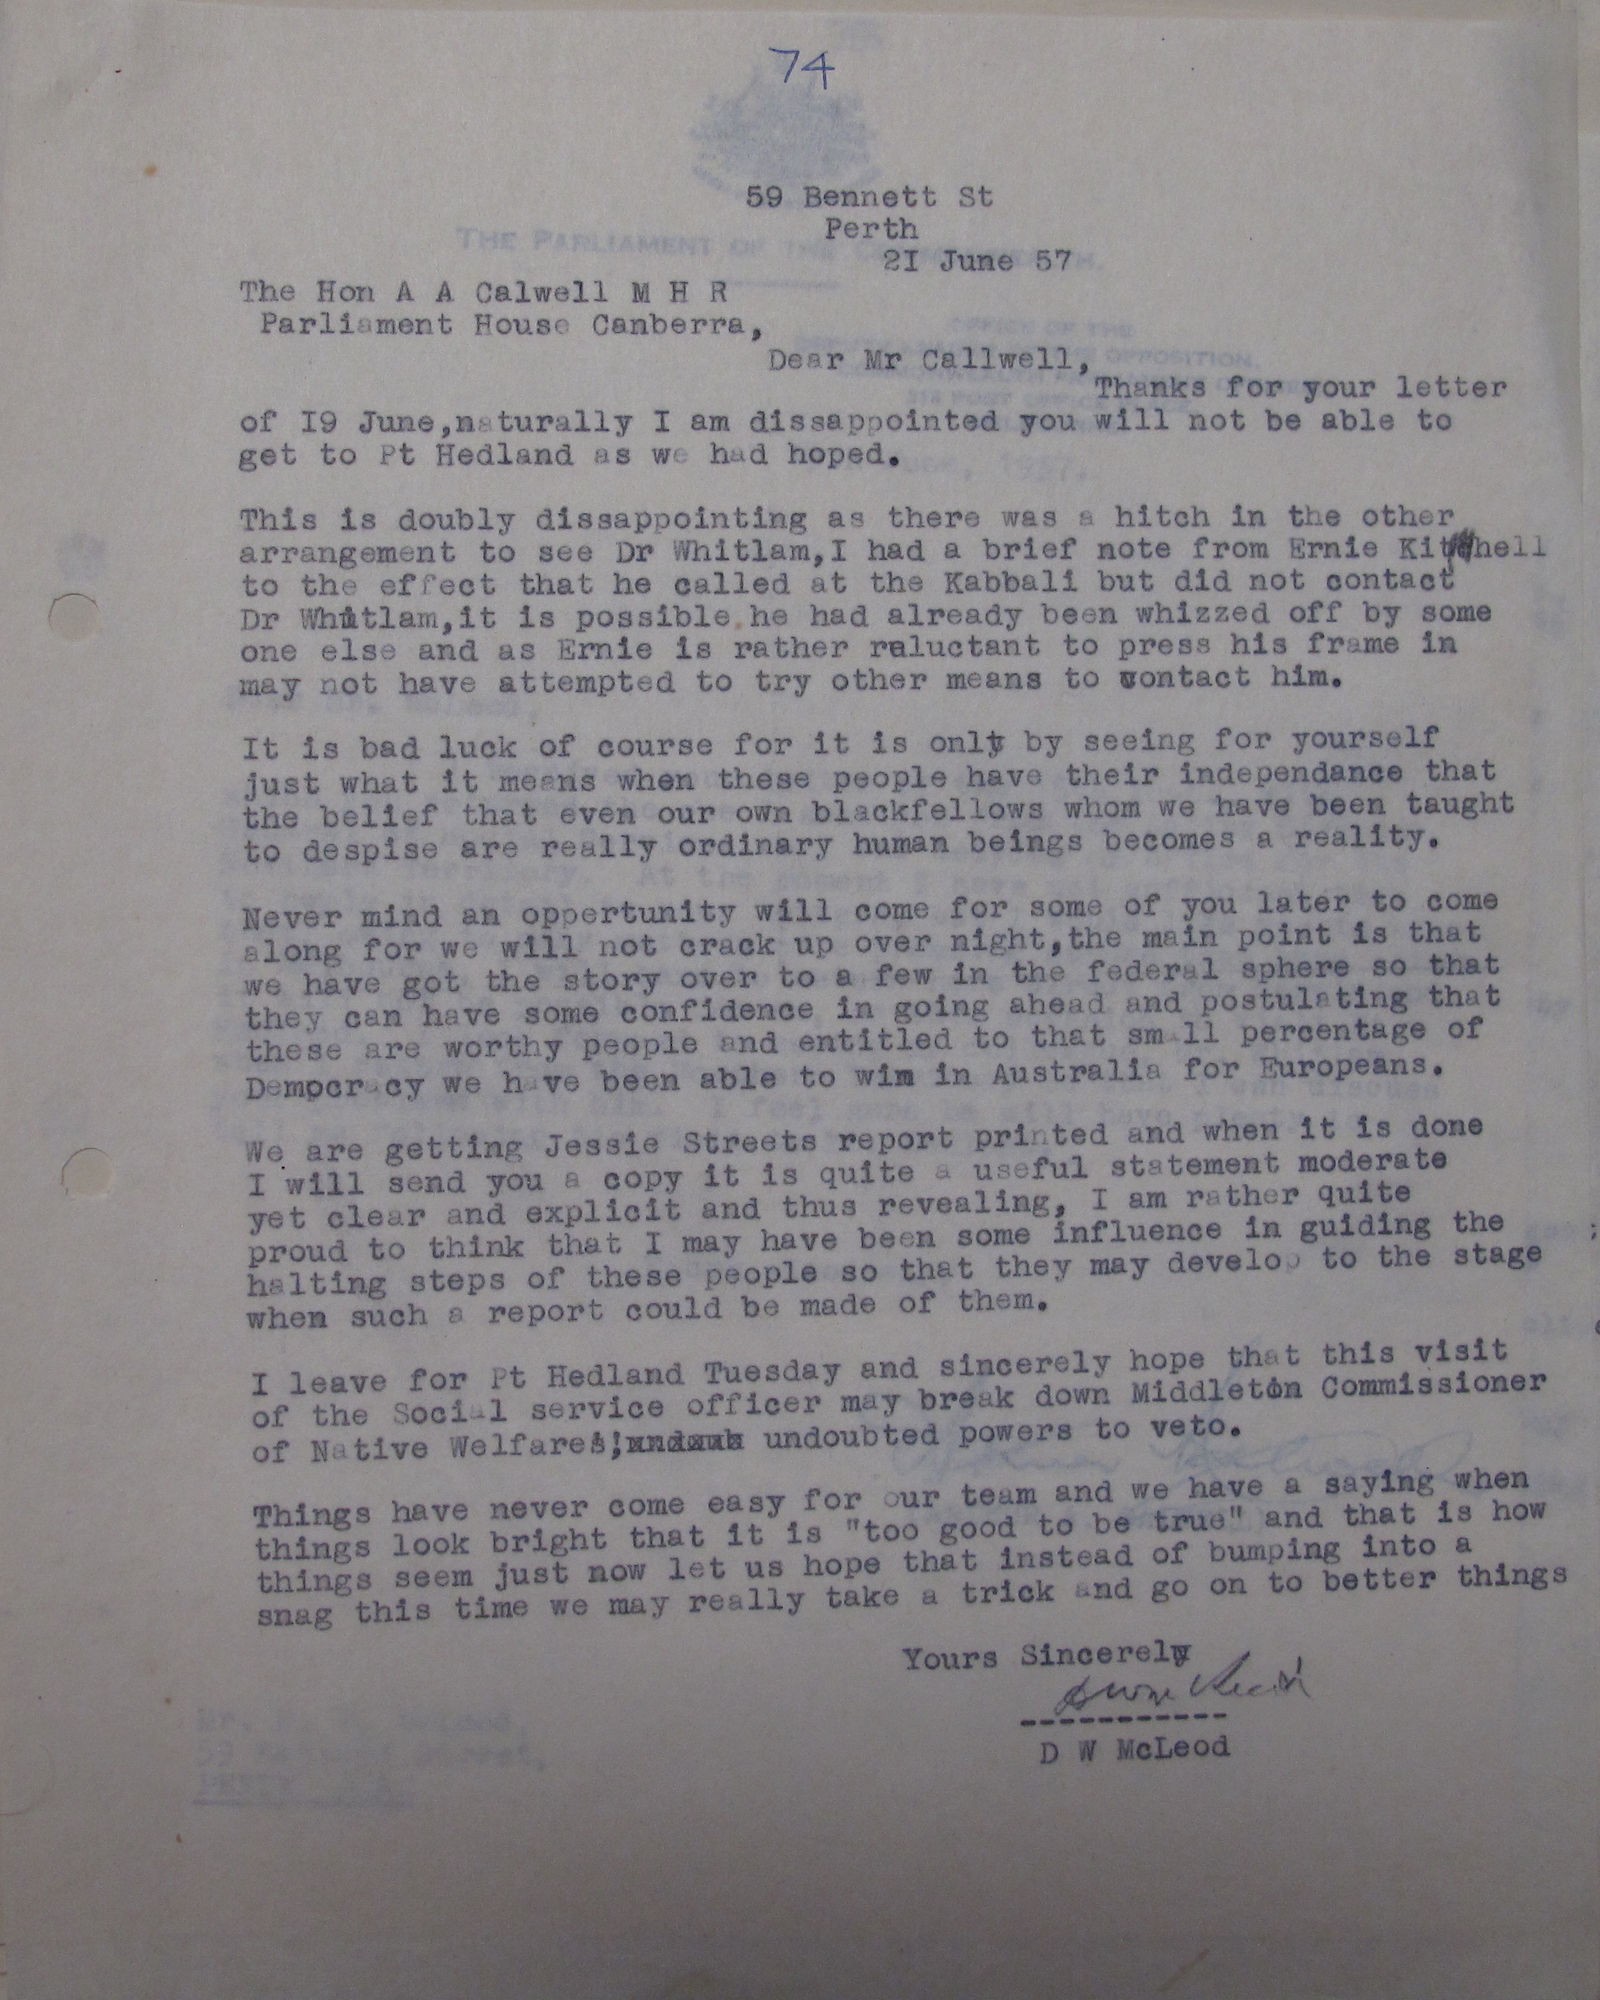 Don McLeod to Arthur Calwell, 21 June 1957